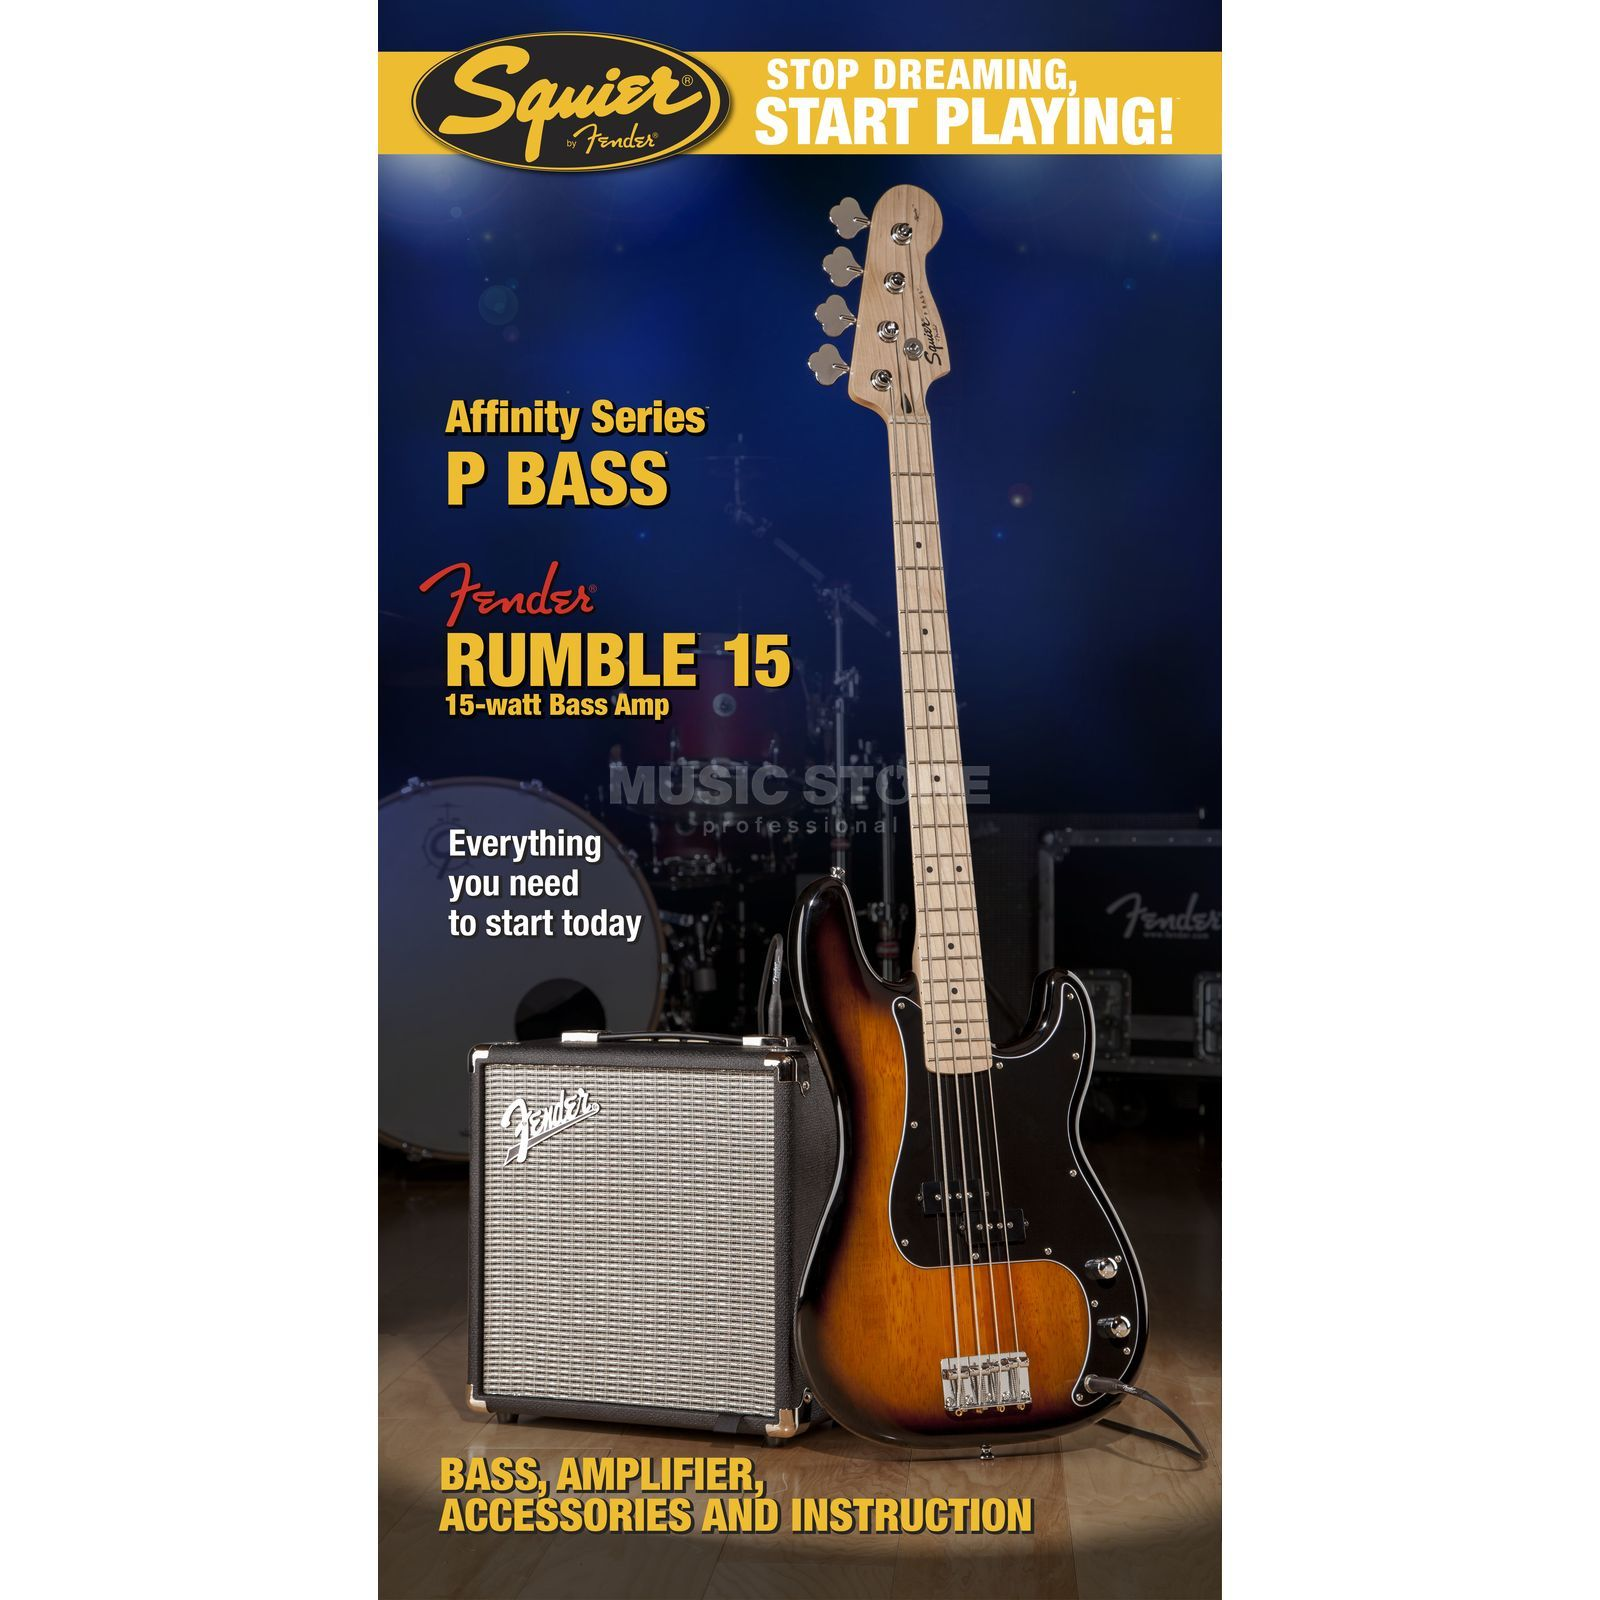 Fender Squier Affinity Series Precision Bass Pack Brown Sunburst w/ Fender Rumble 15 Zdjęcie produktu